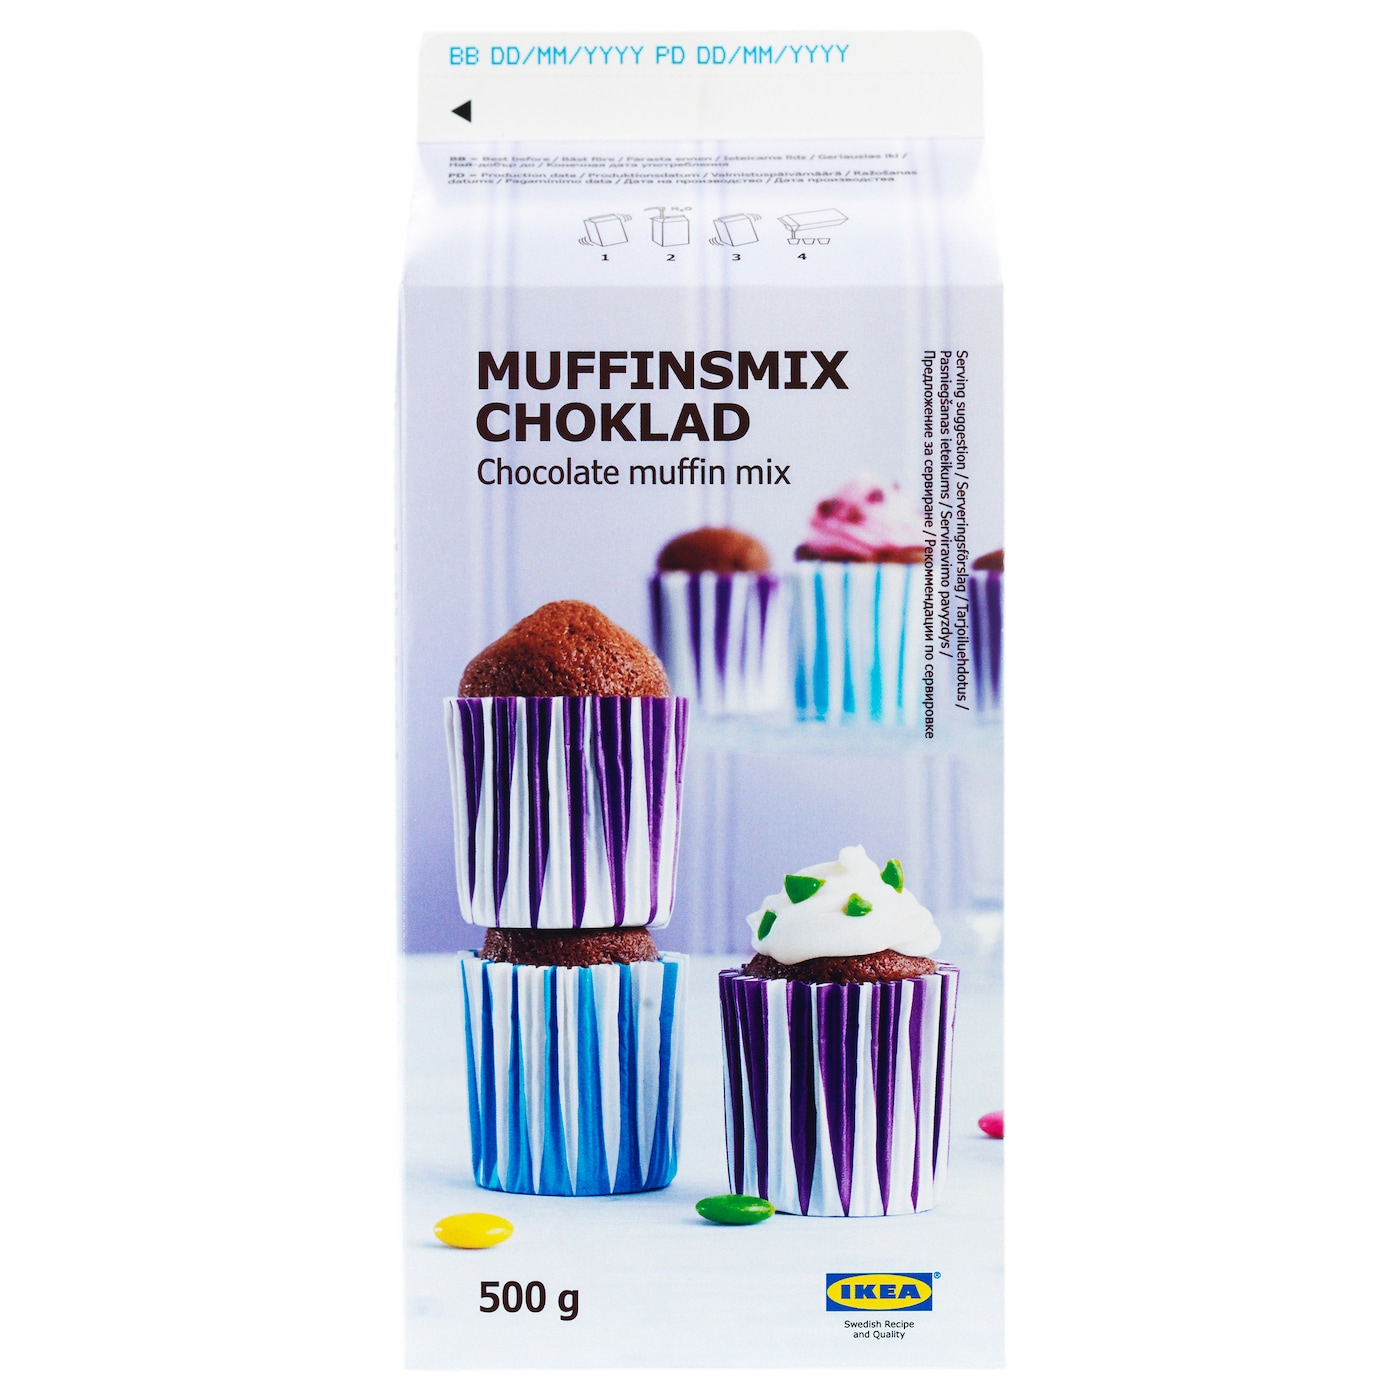 IKEA MUFFINSMIX CHOKLAD muffin mix, chocolate